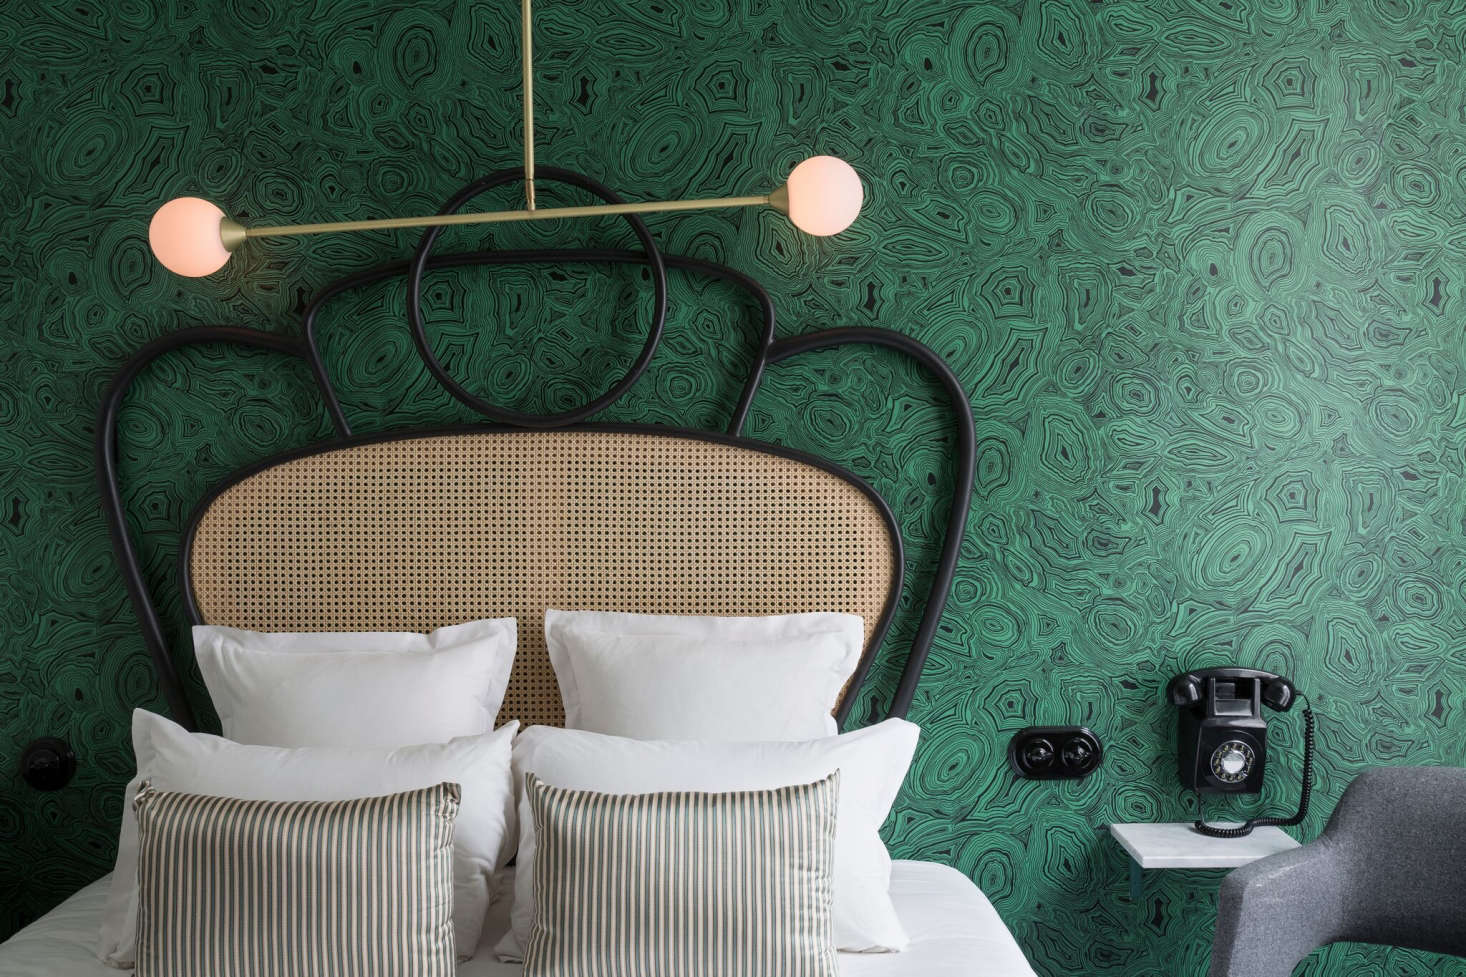 Hotel Panache An Affordable Design Hotel In Paris